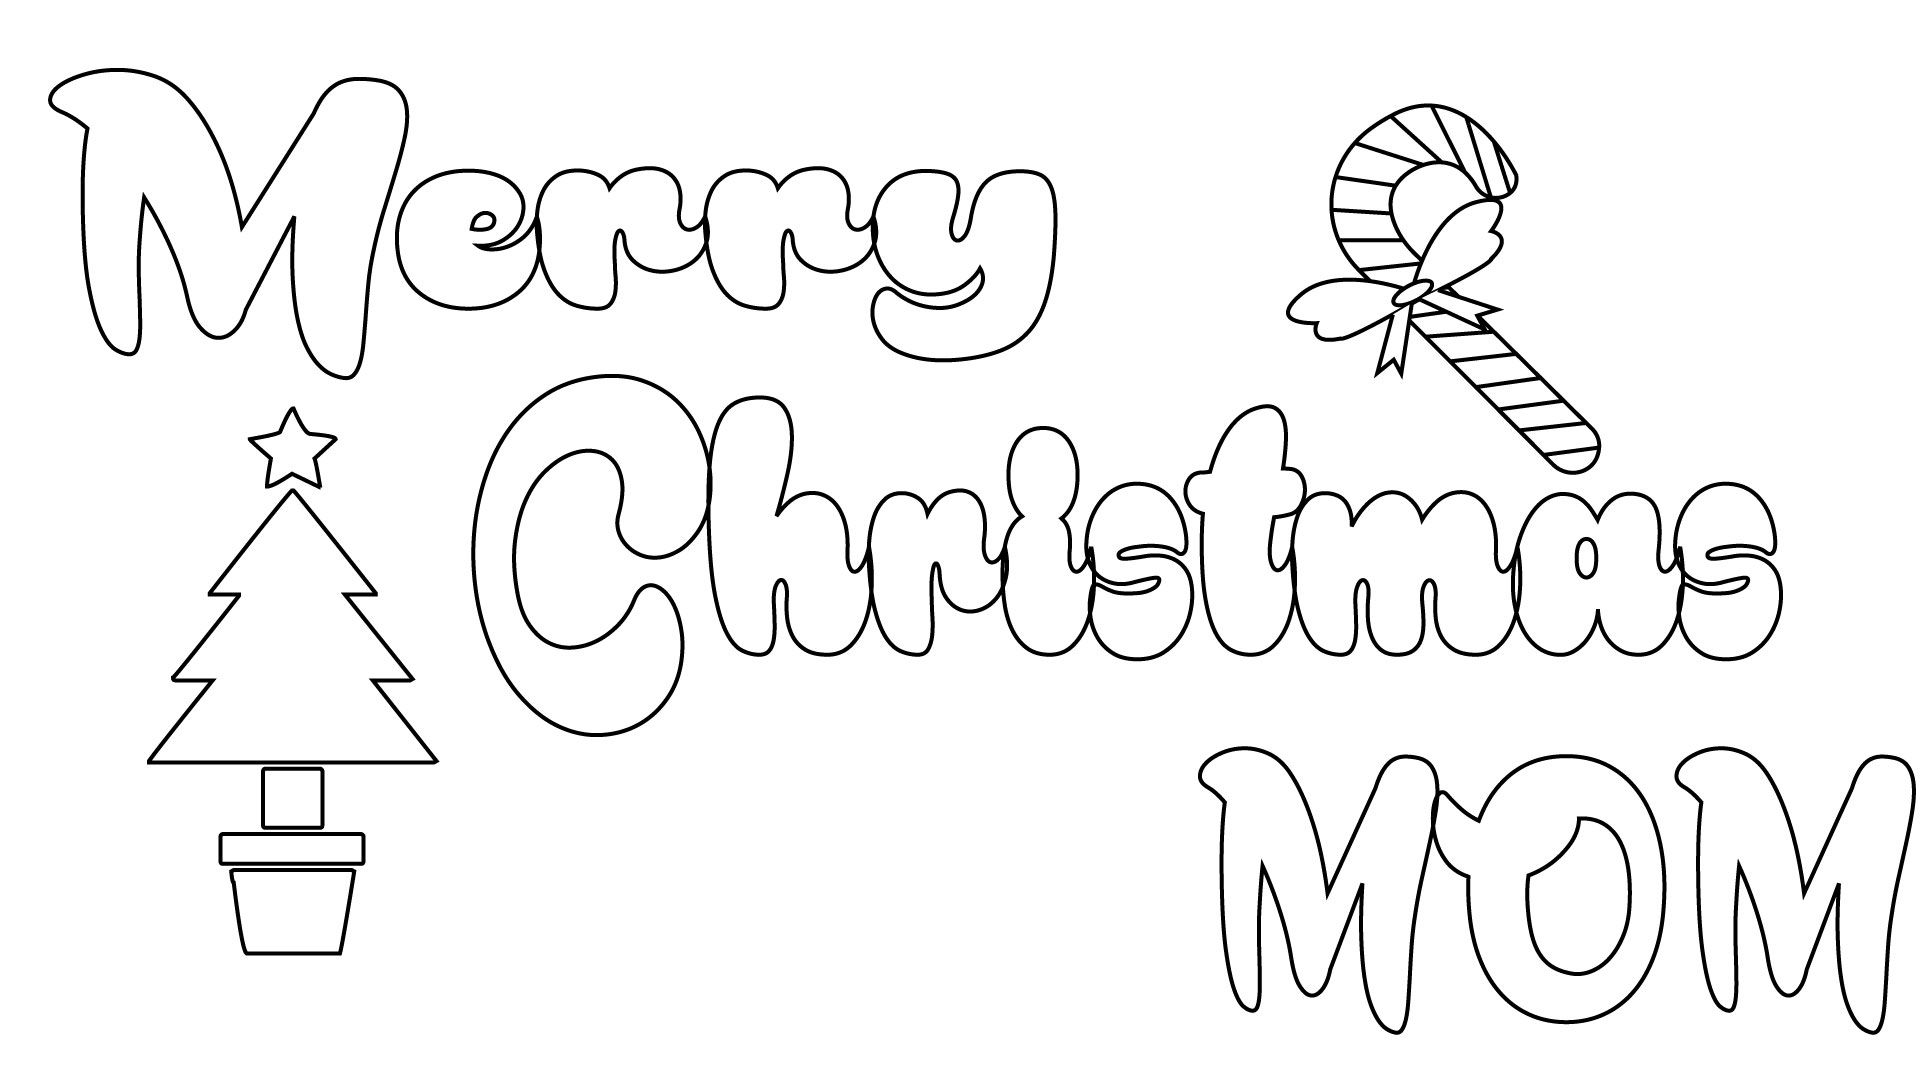 Printable Merry Christmas Coloring Pages For Kids Adults And Mom 2019 Merry Christmas Coloring Pages Mom Coloring Pages Christmas Coloring Pages